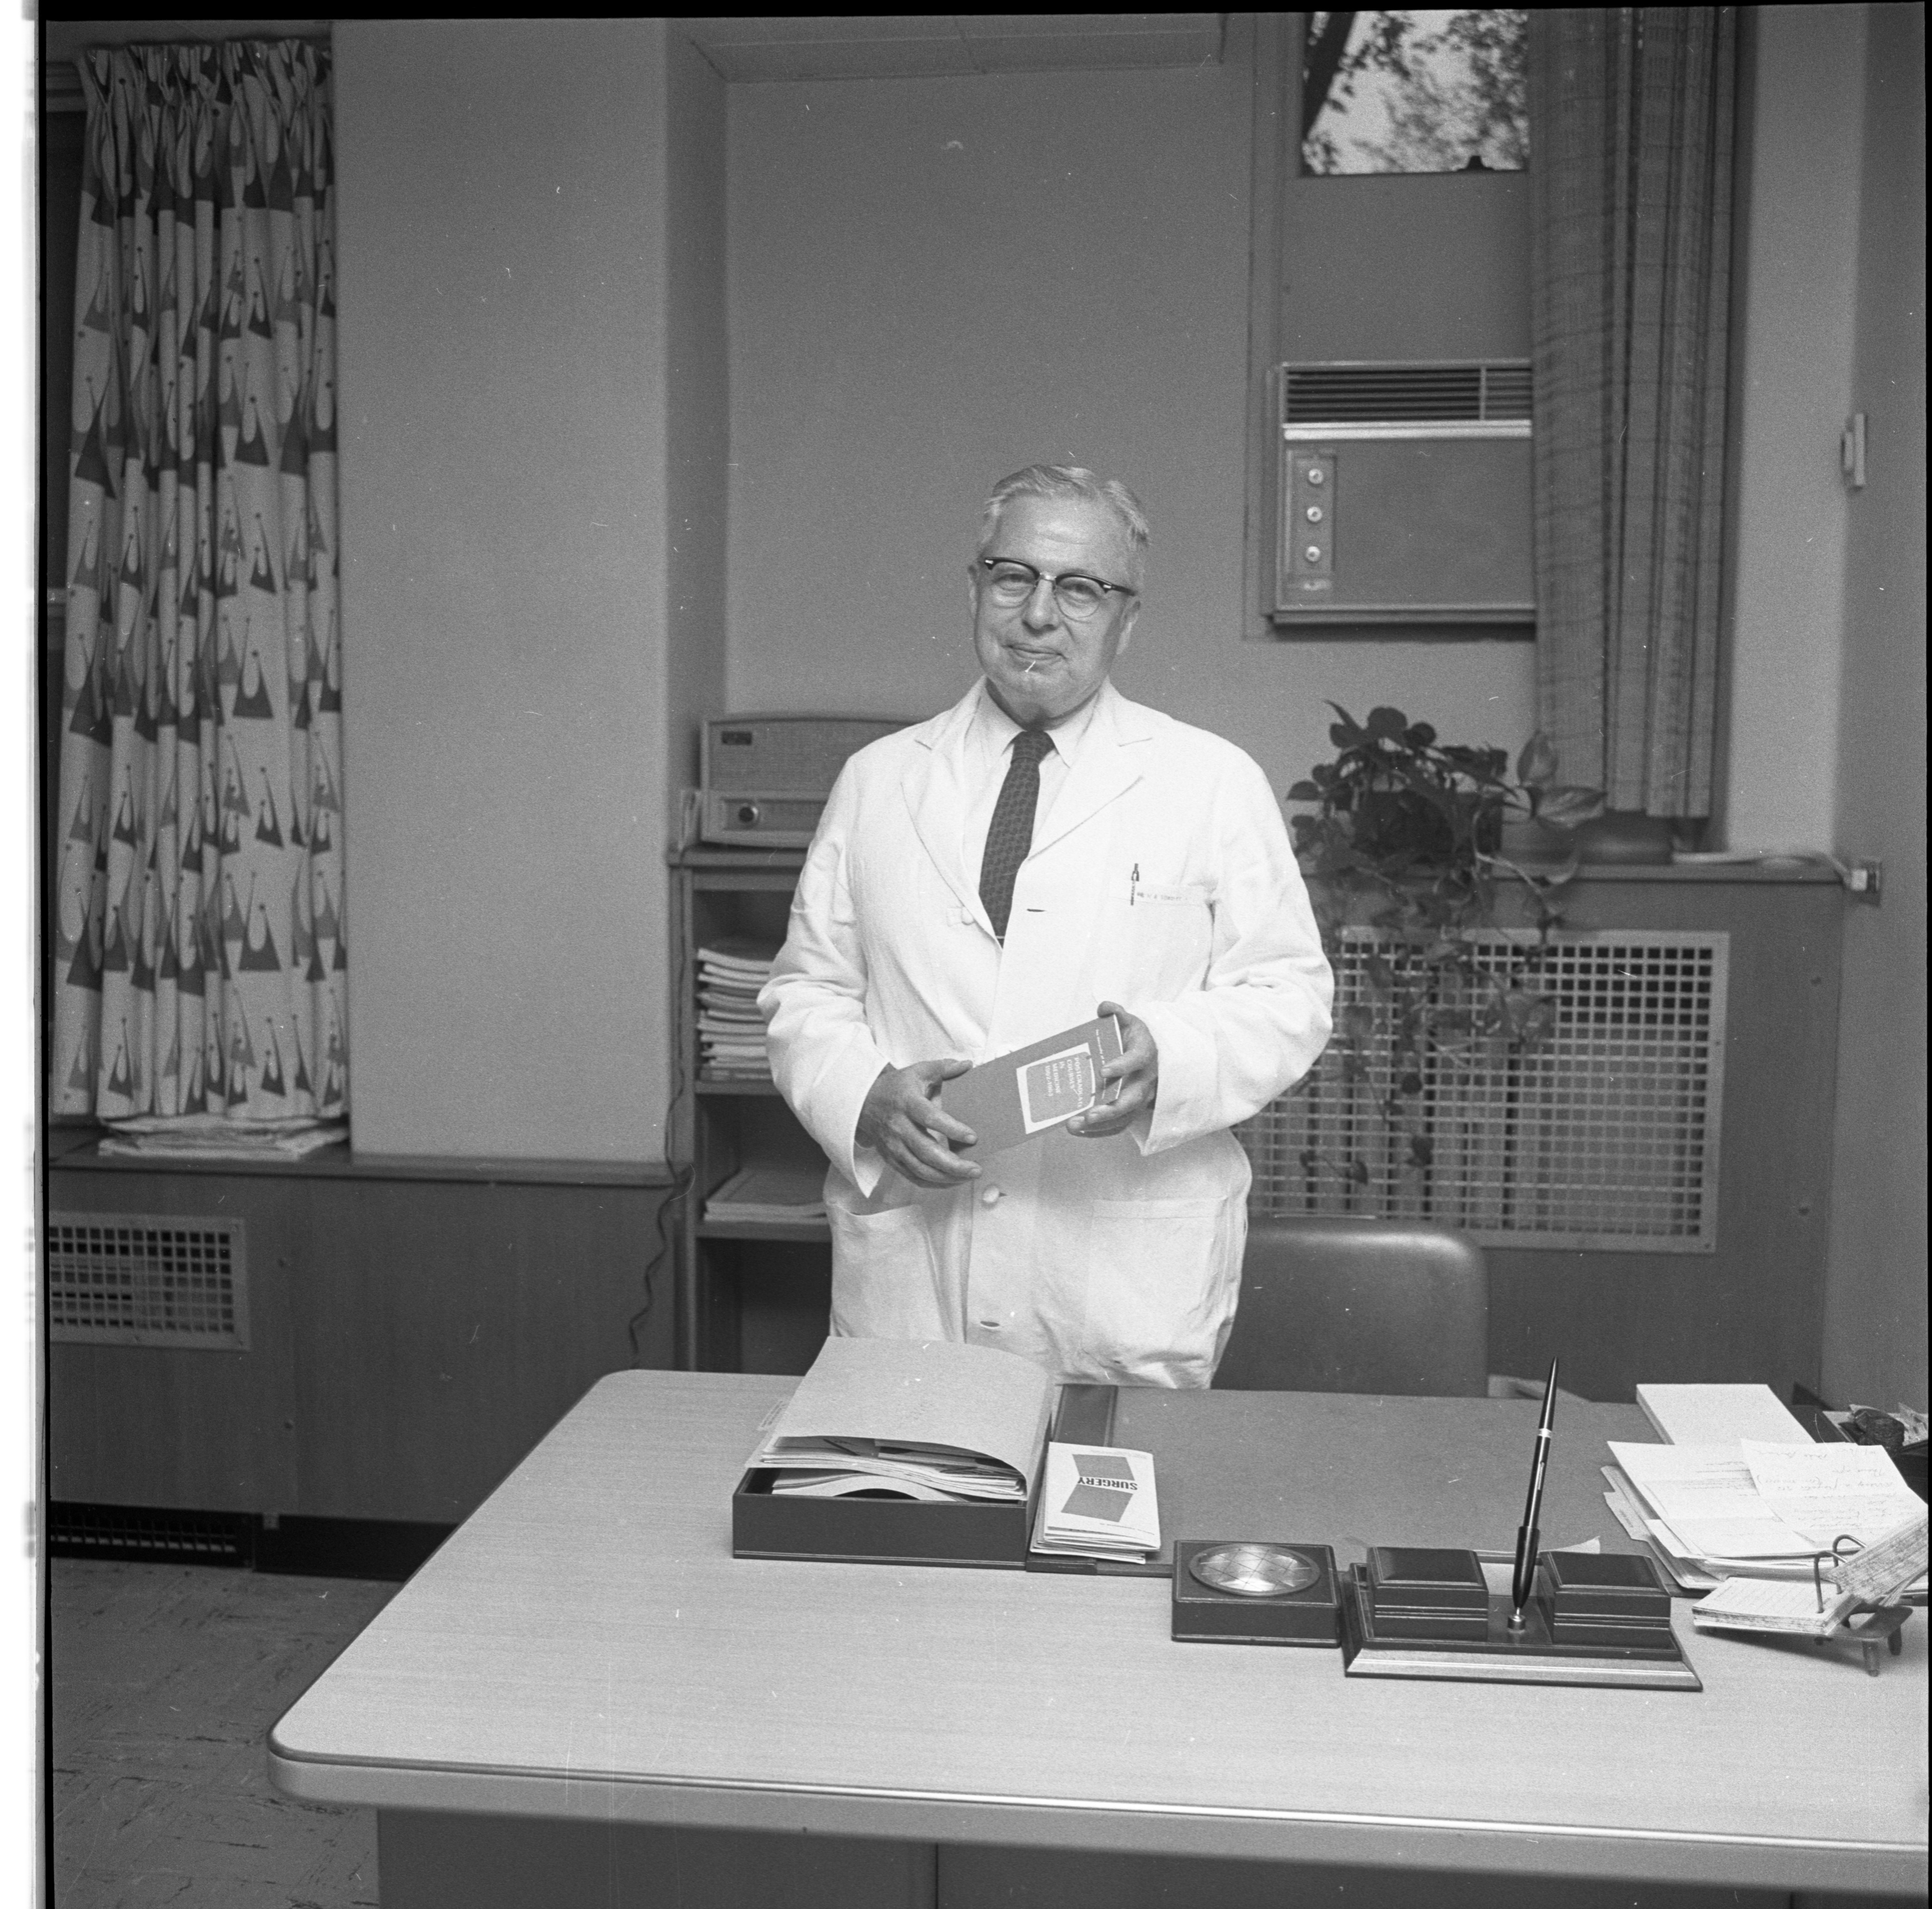 Dr. Harry A. Towsley, October 9, 1962 image